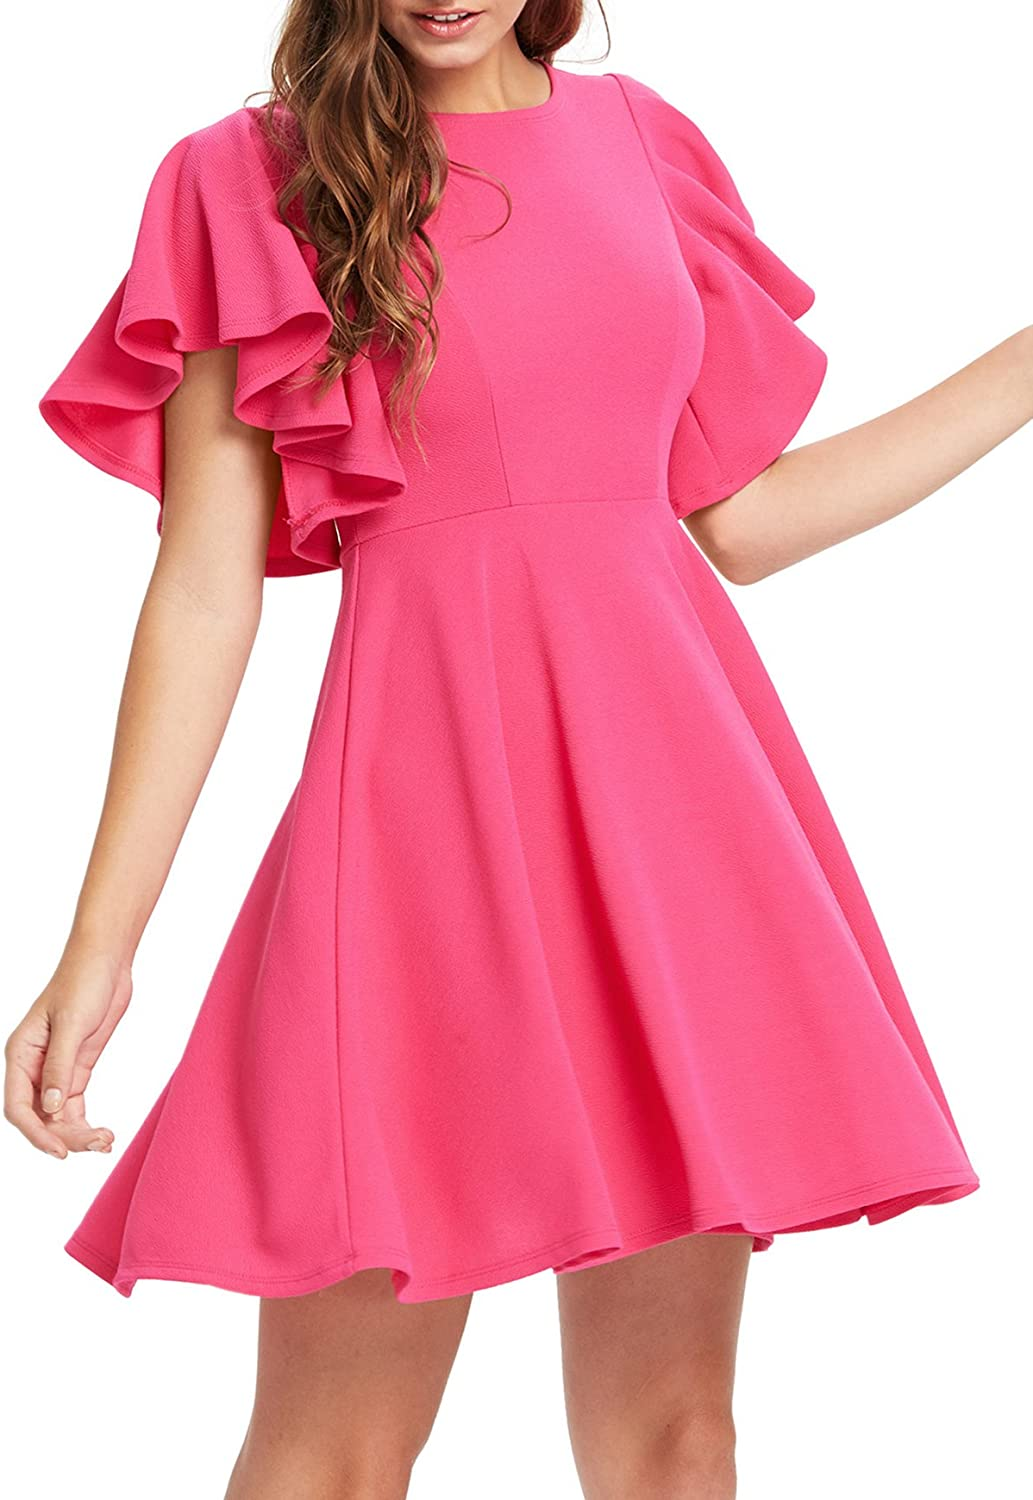 DAILYHAUTE Women's dress PINK / S Haute Edition Women's Flared Skater Cocktail Party Dress